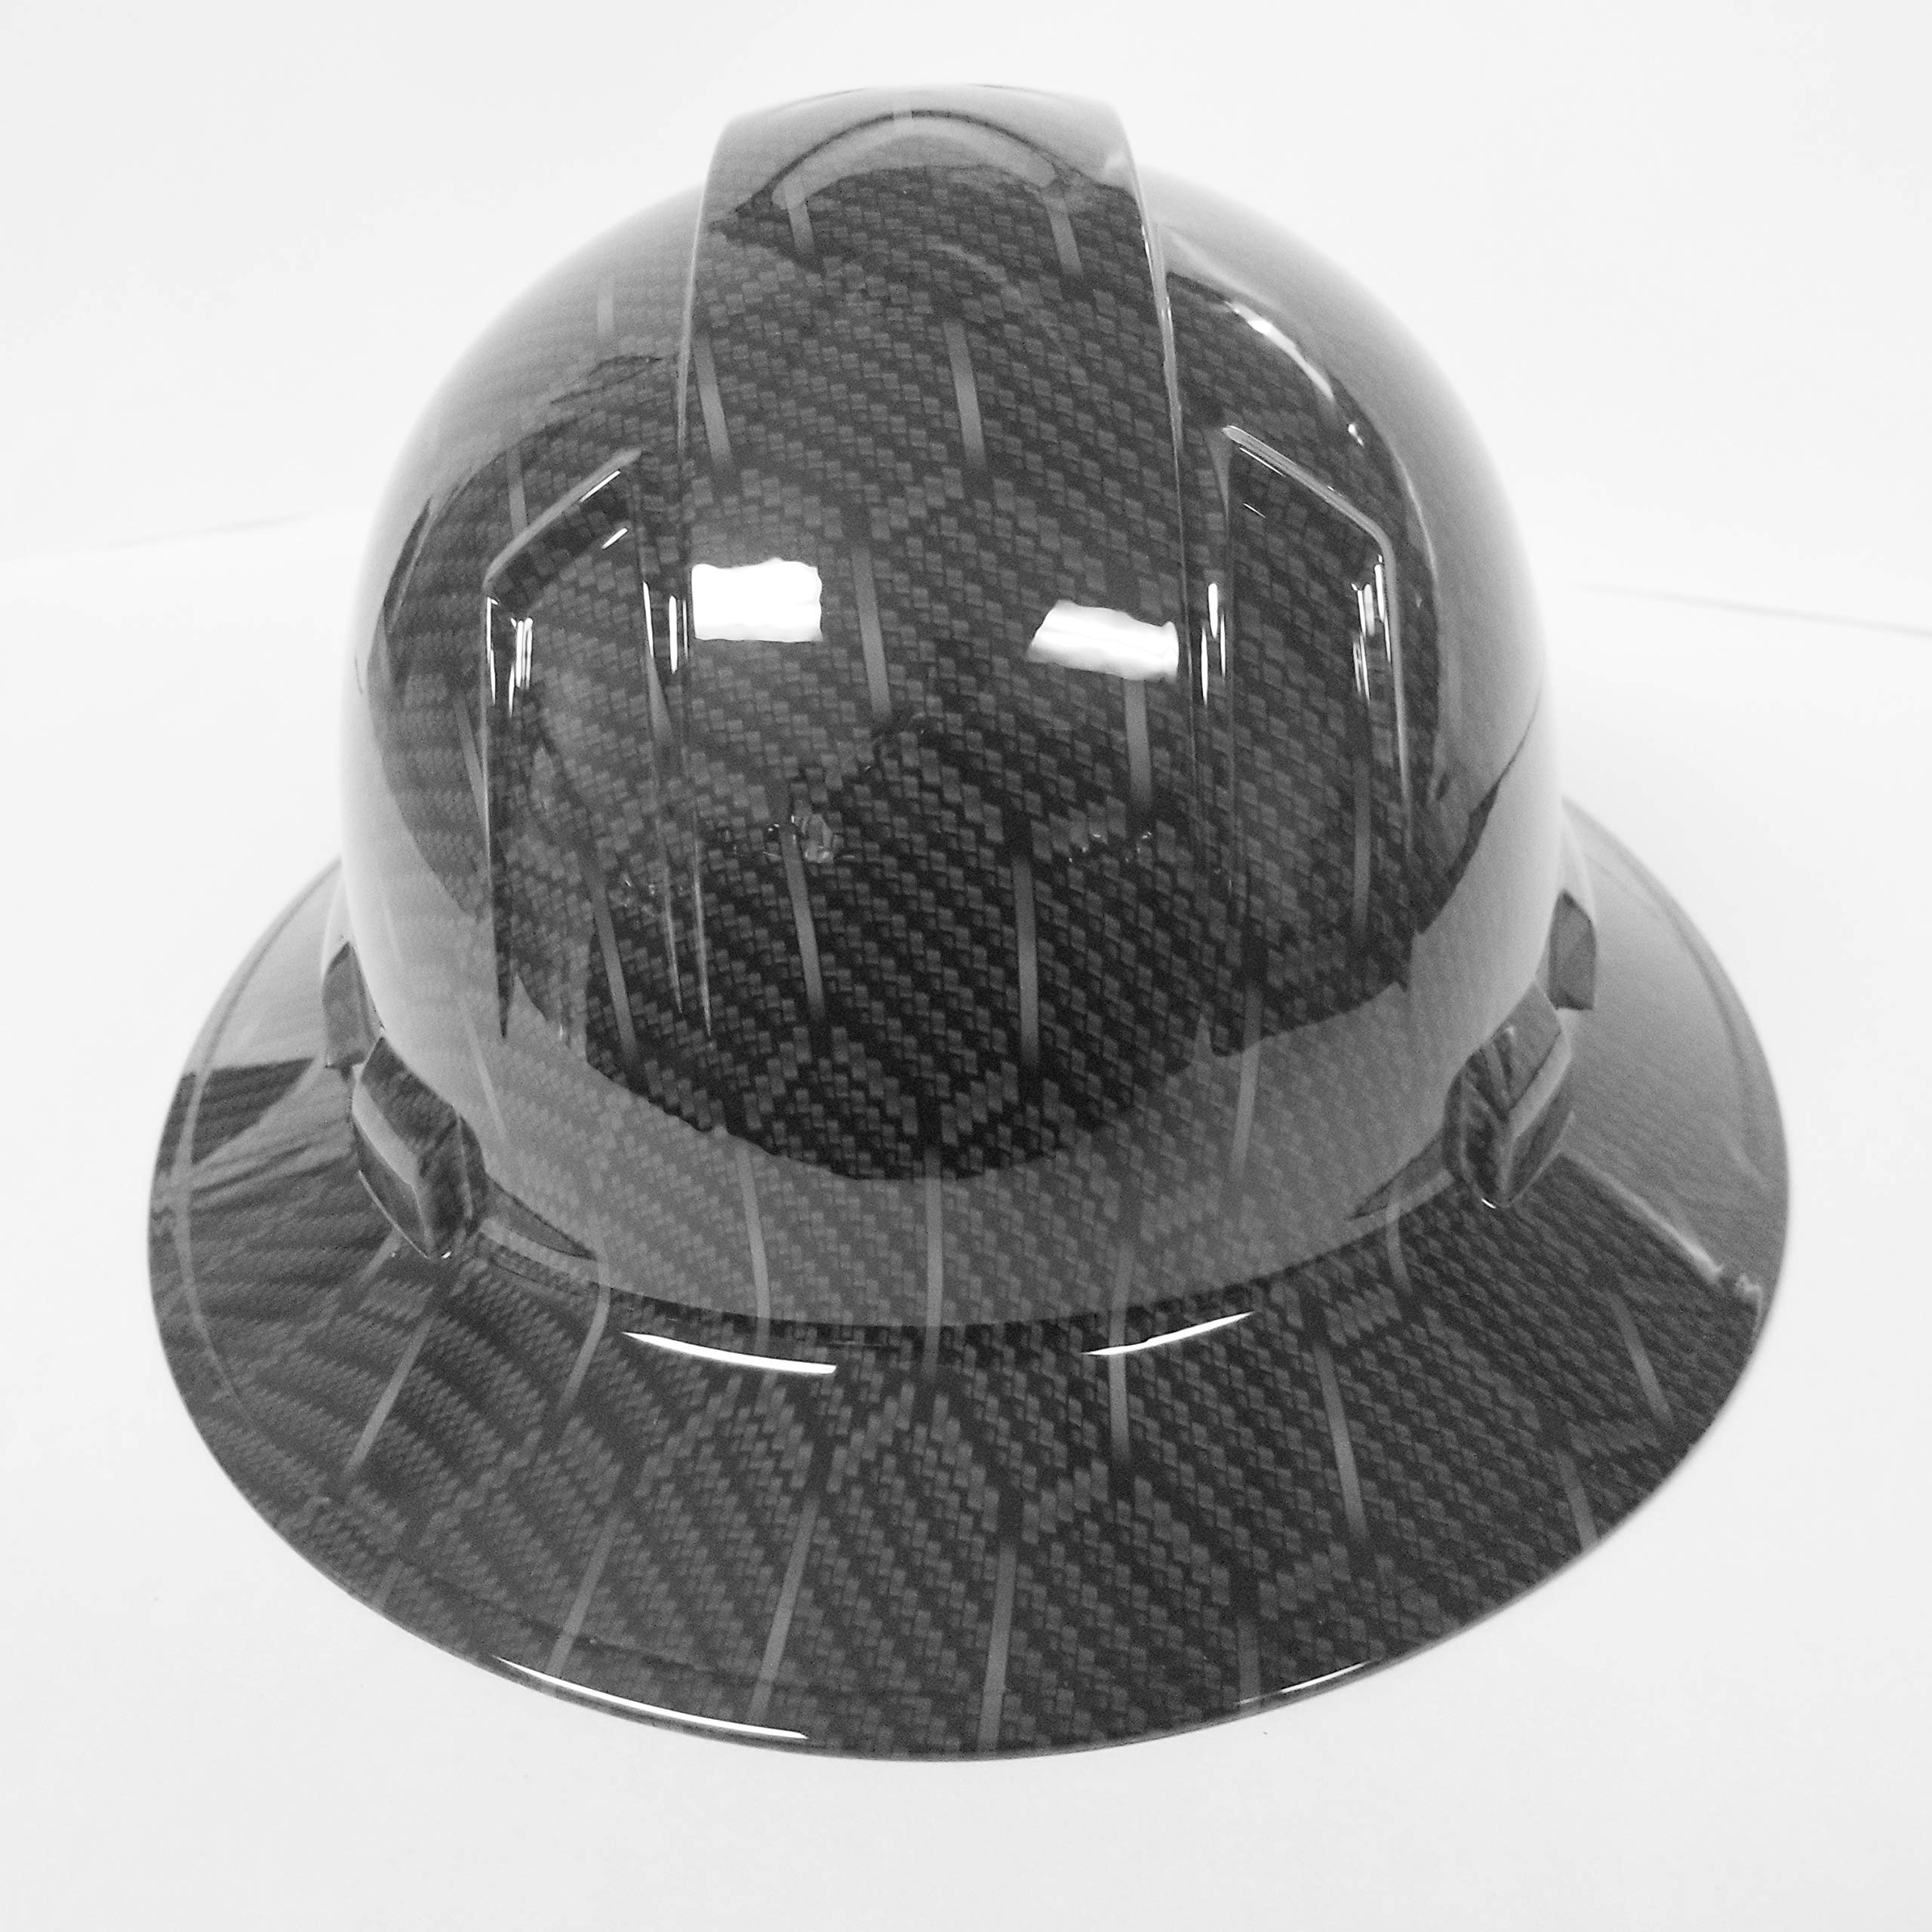 Wet Works Imaging Customized Pyramex Full Brim HEX Weave Carbon Fiber 3D Limited Hard HAT with Ratcheting Suspension Custom LIDS Crazy Sick Construction PPE by Wet Works Imaging (Image #5)